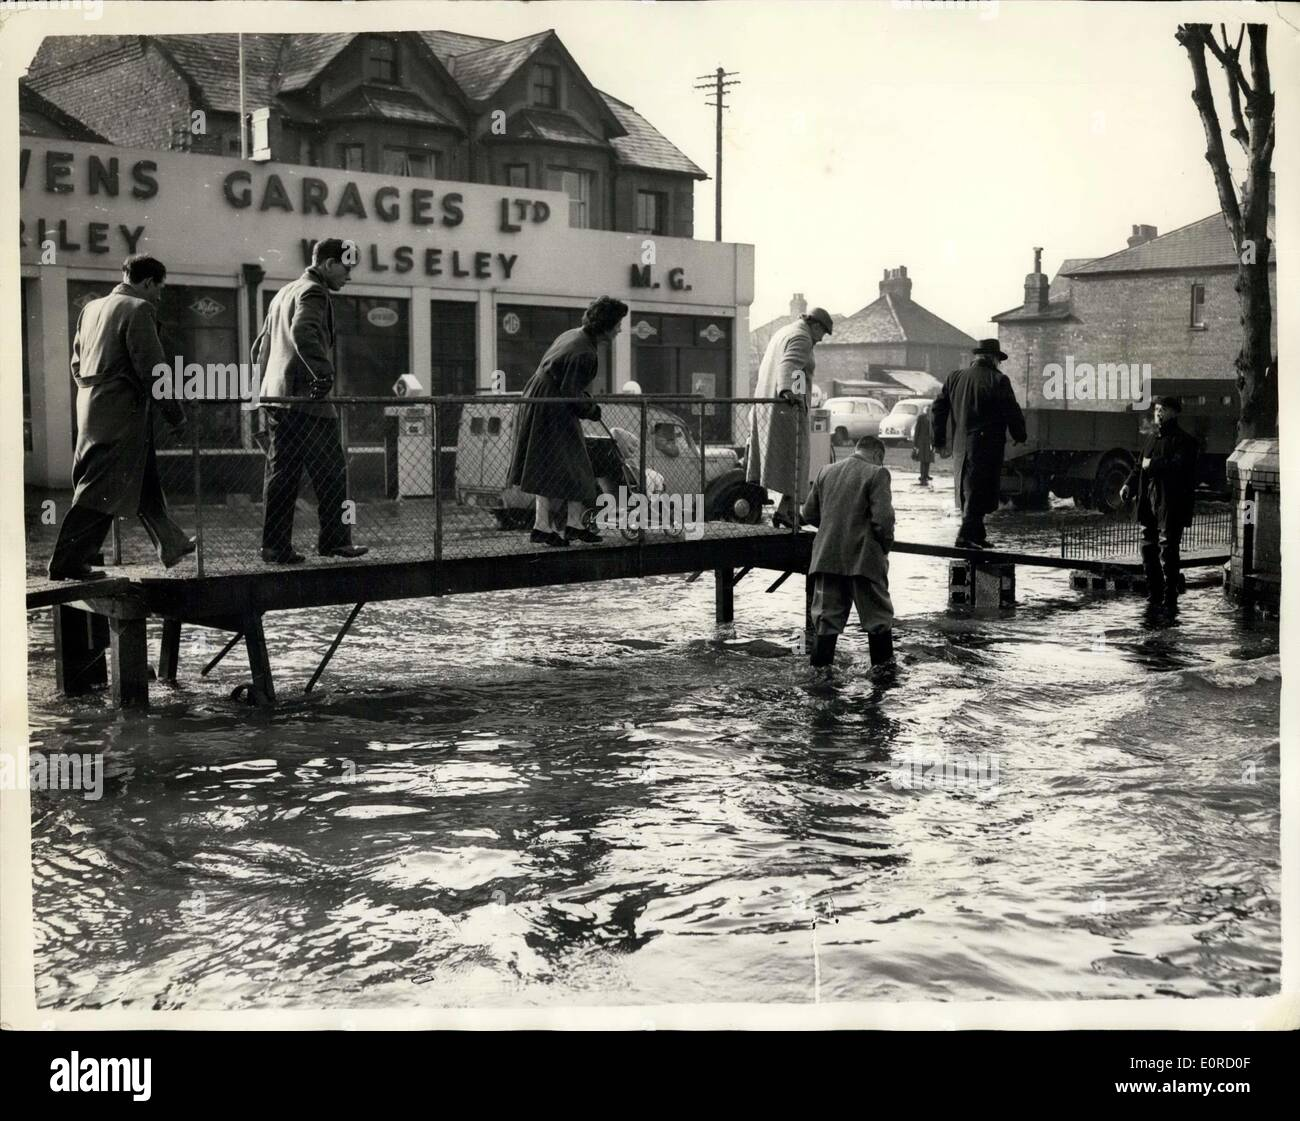 Jan. 24, 1959 - Floods at Maidenhead: Boatmen ferried trapped families to safety today as flood water from the River Thames encircled Maidenhead homes. Emergency calls were answered by many riverside boat builders. Punts, were also used in the rescue work. Photo Shows They had to ''walk the plank'' in Maidenhead High Street today to keep clear of the invading flood waters. Wardens in rubber boots kept watch in case anyone wanted help. - Stock Image